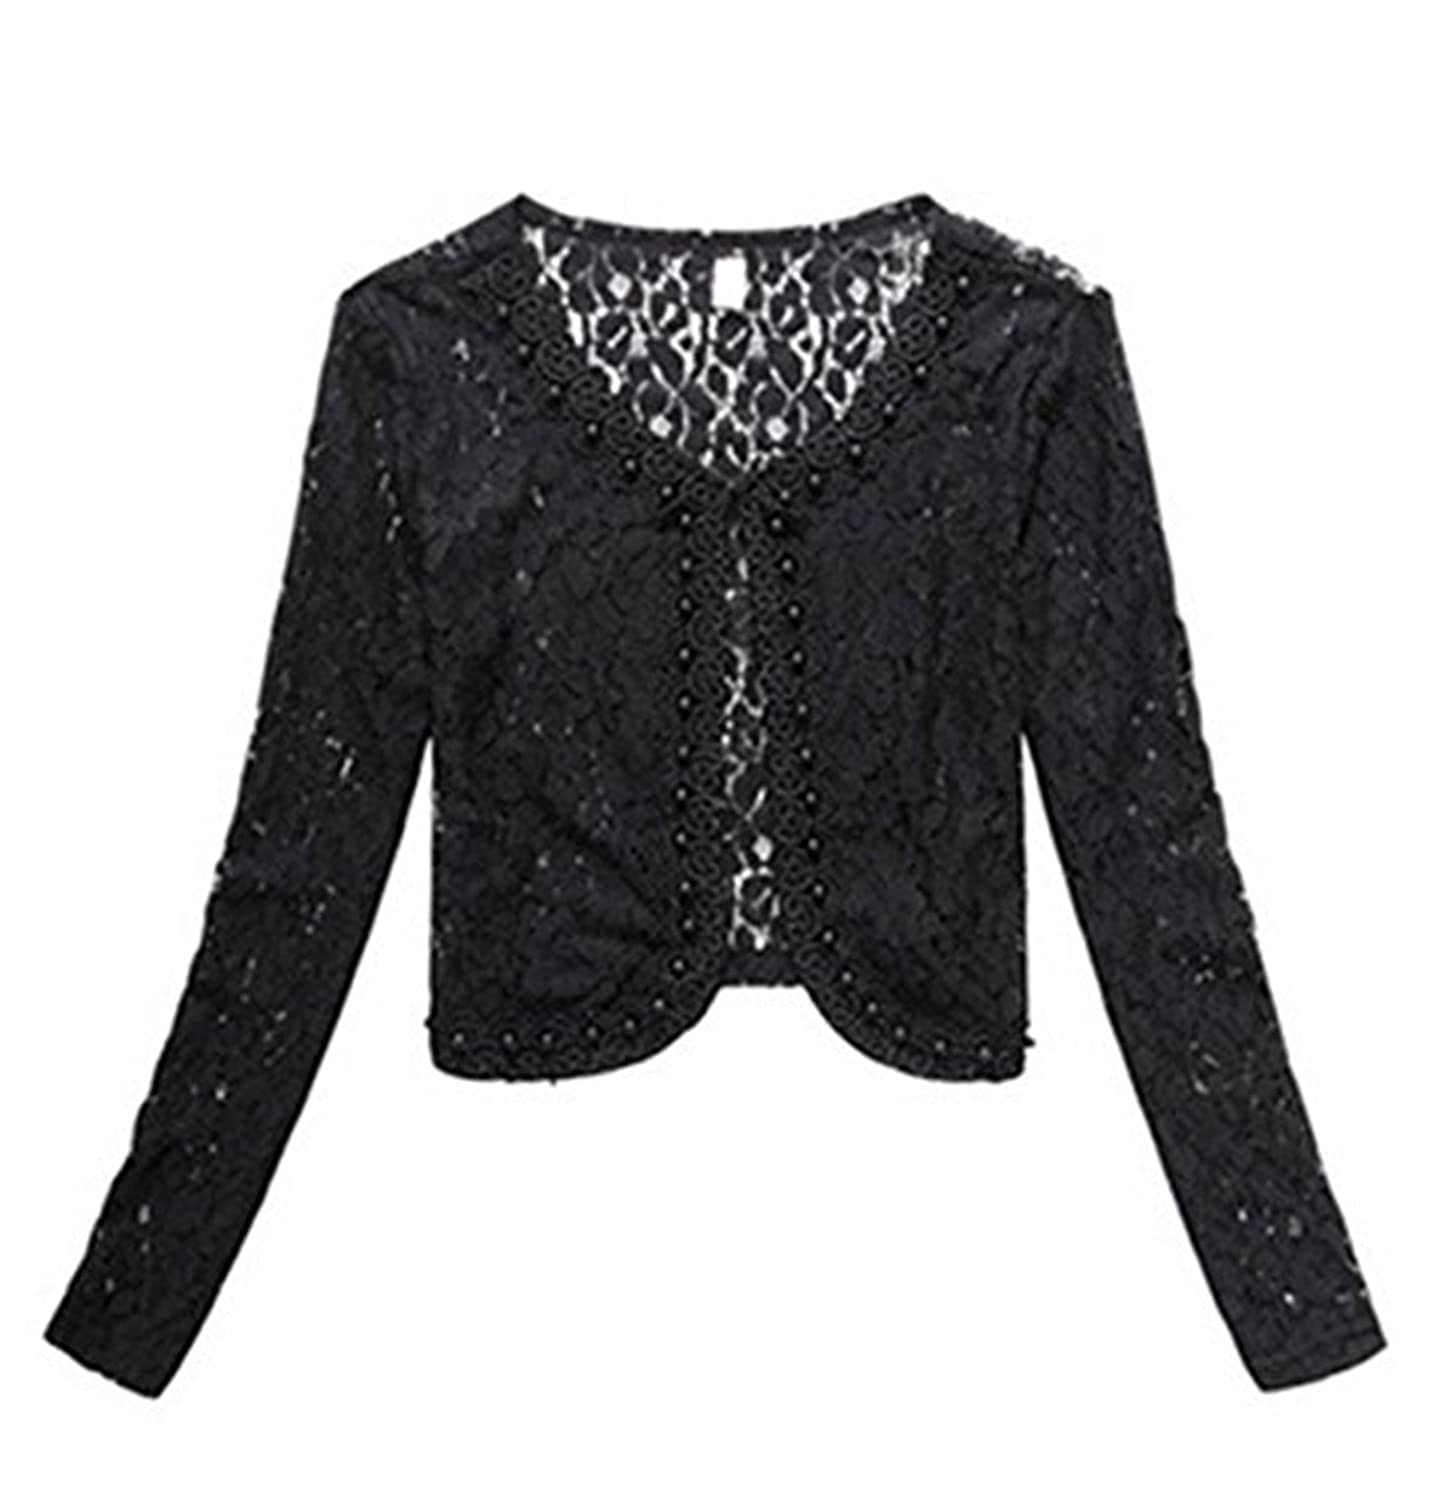 TOP OneWomen's Lace Shrug Bolero Cardigan Party Long Sleeve Floral ...